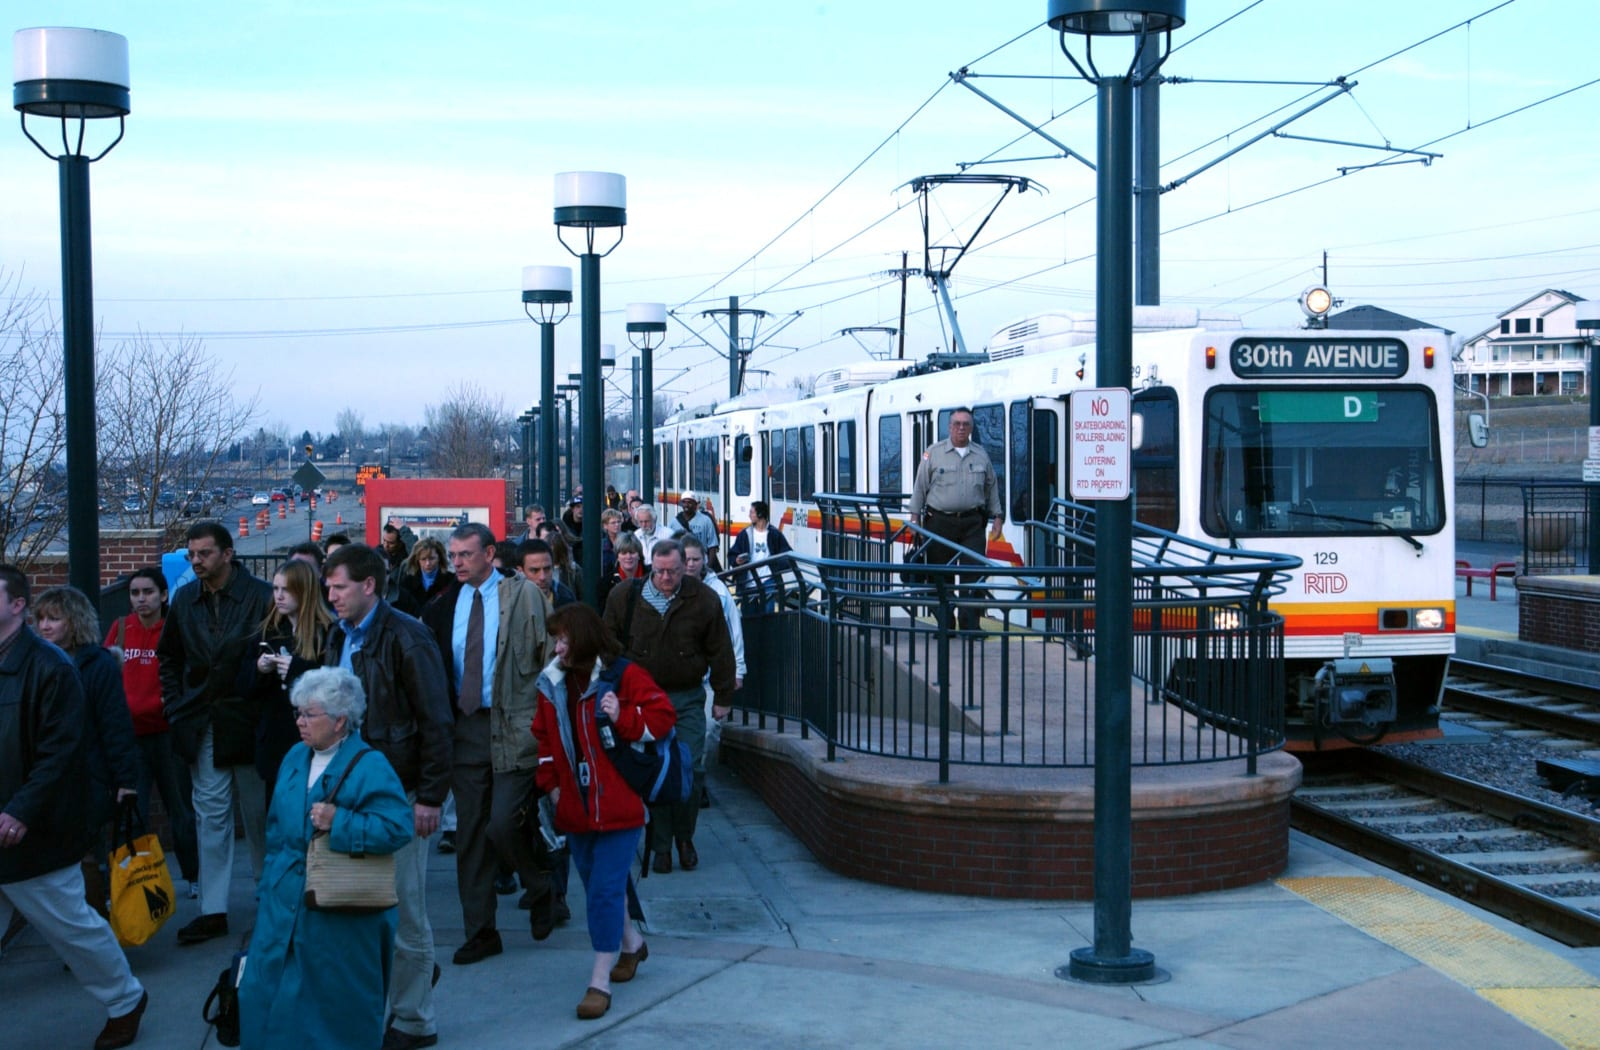 RTD Train Mineral Station Crowd Littleton CO